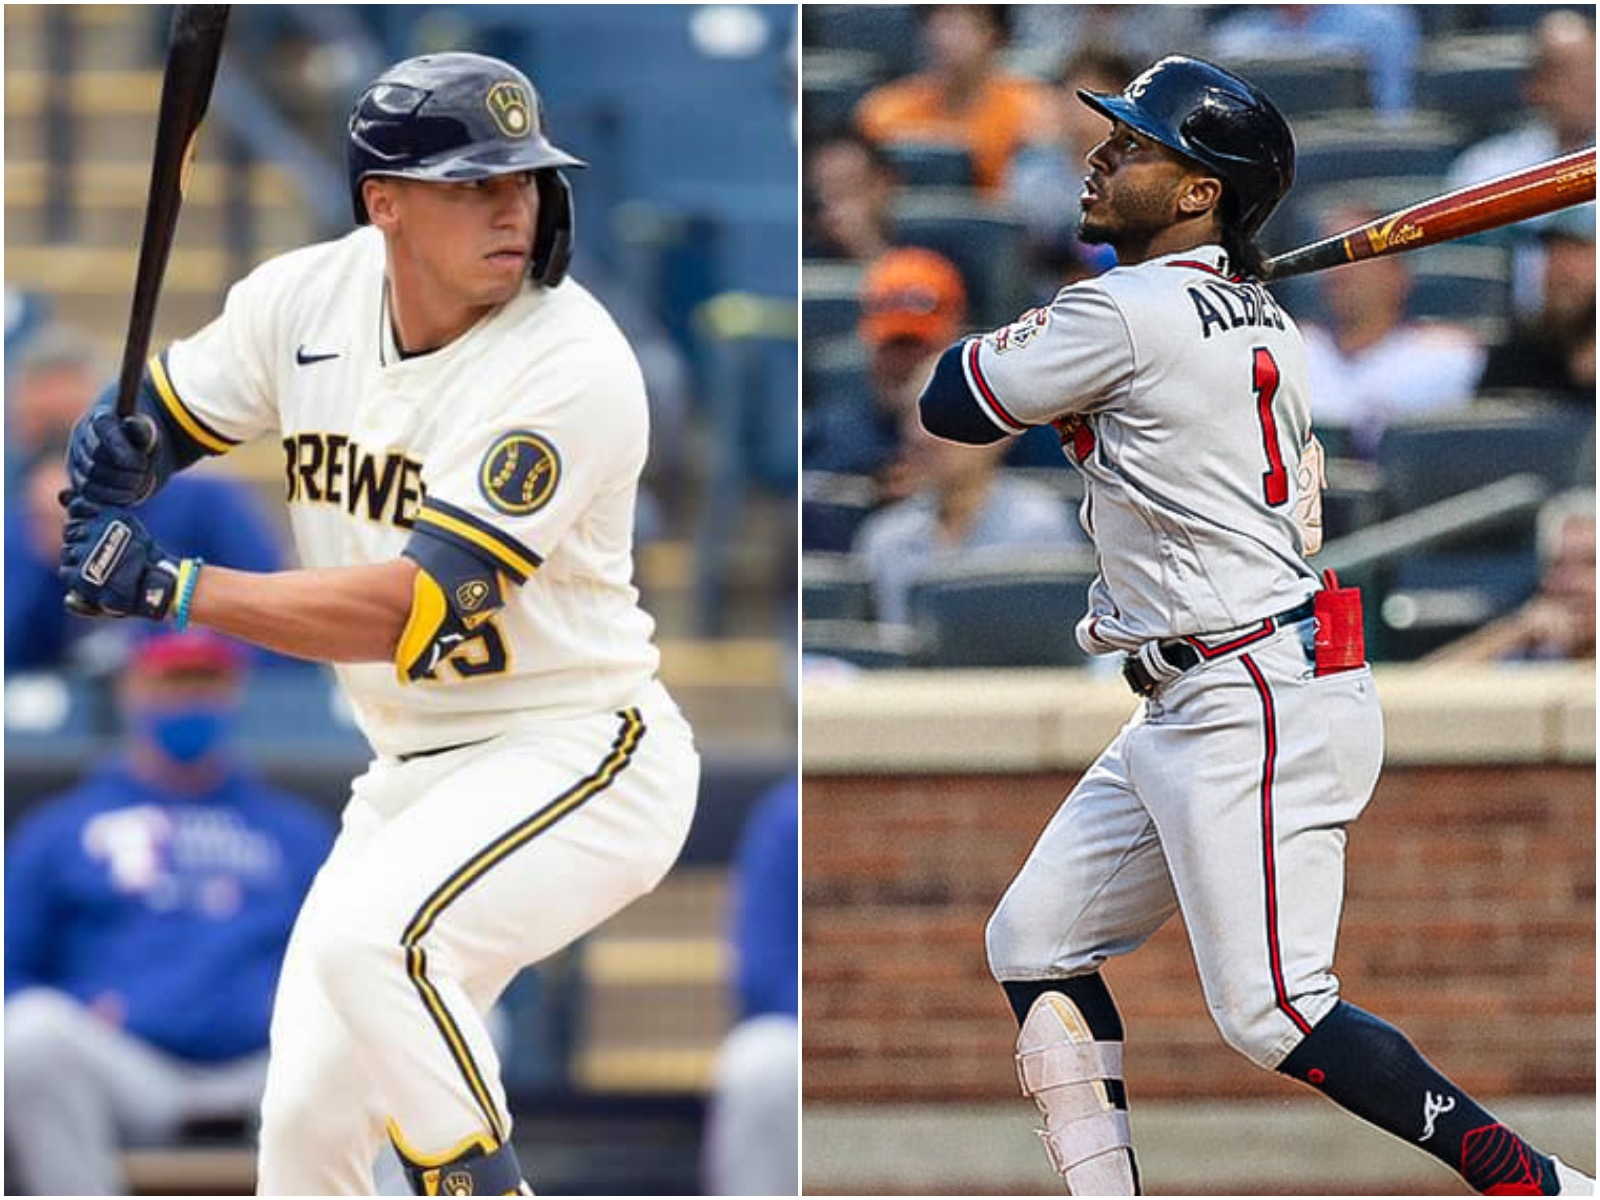 Here's the schedule for the Brewers' postseason series against the Braves